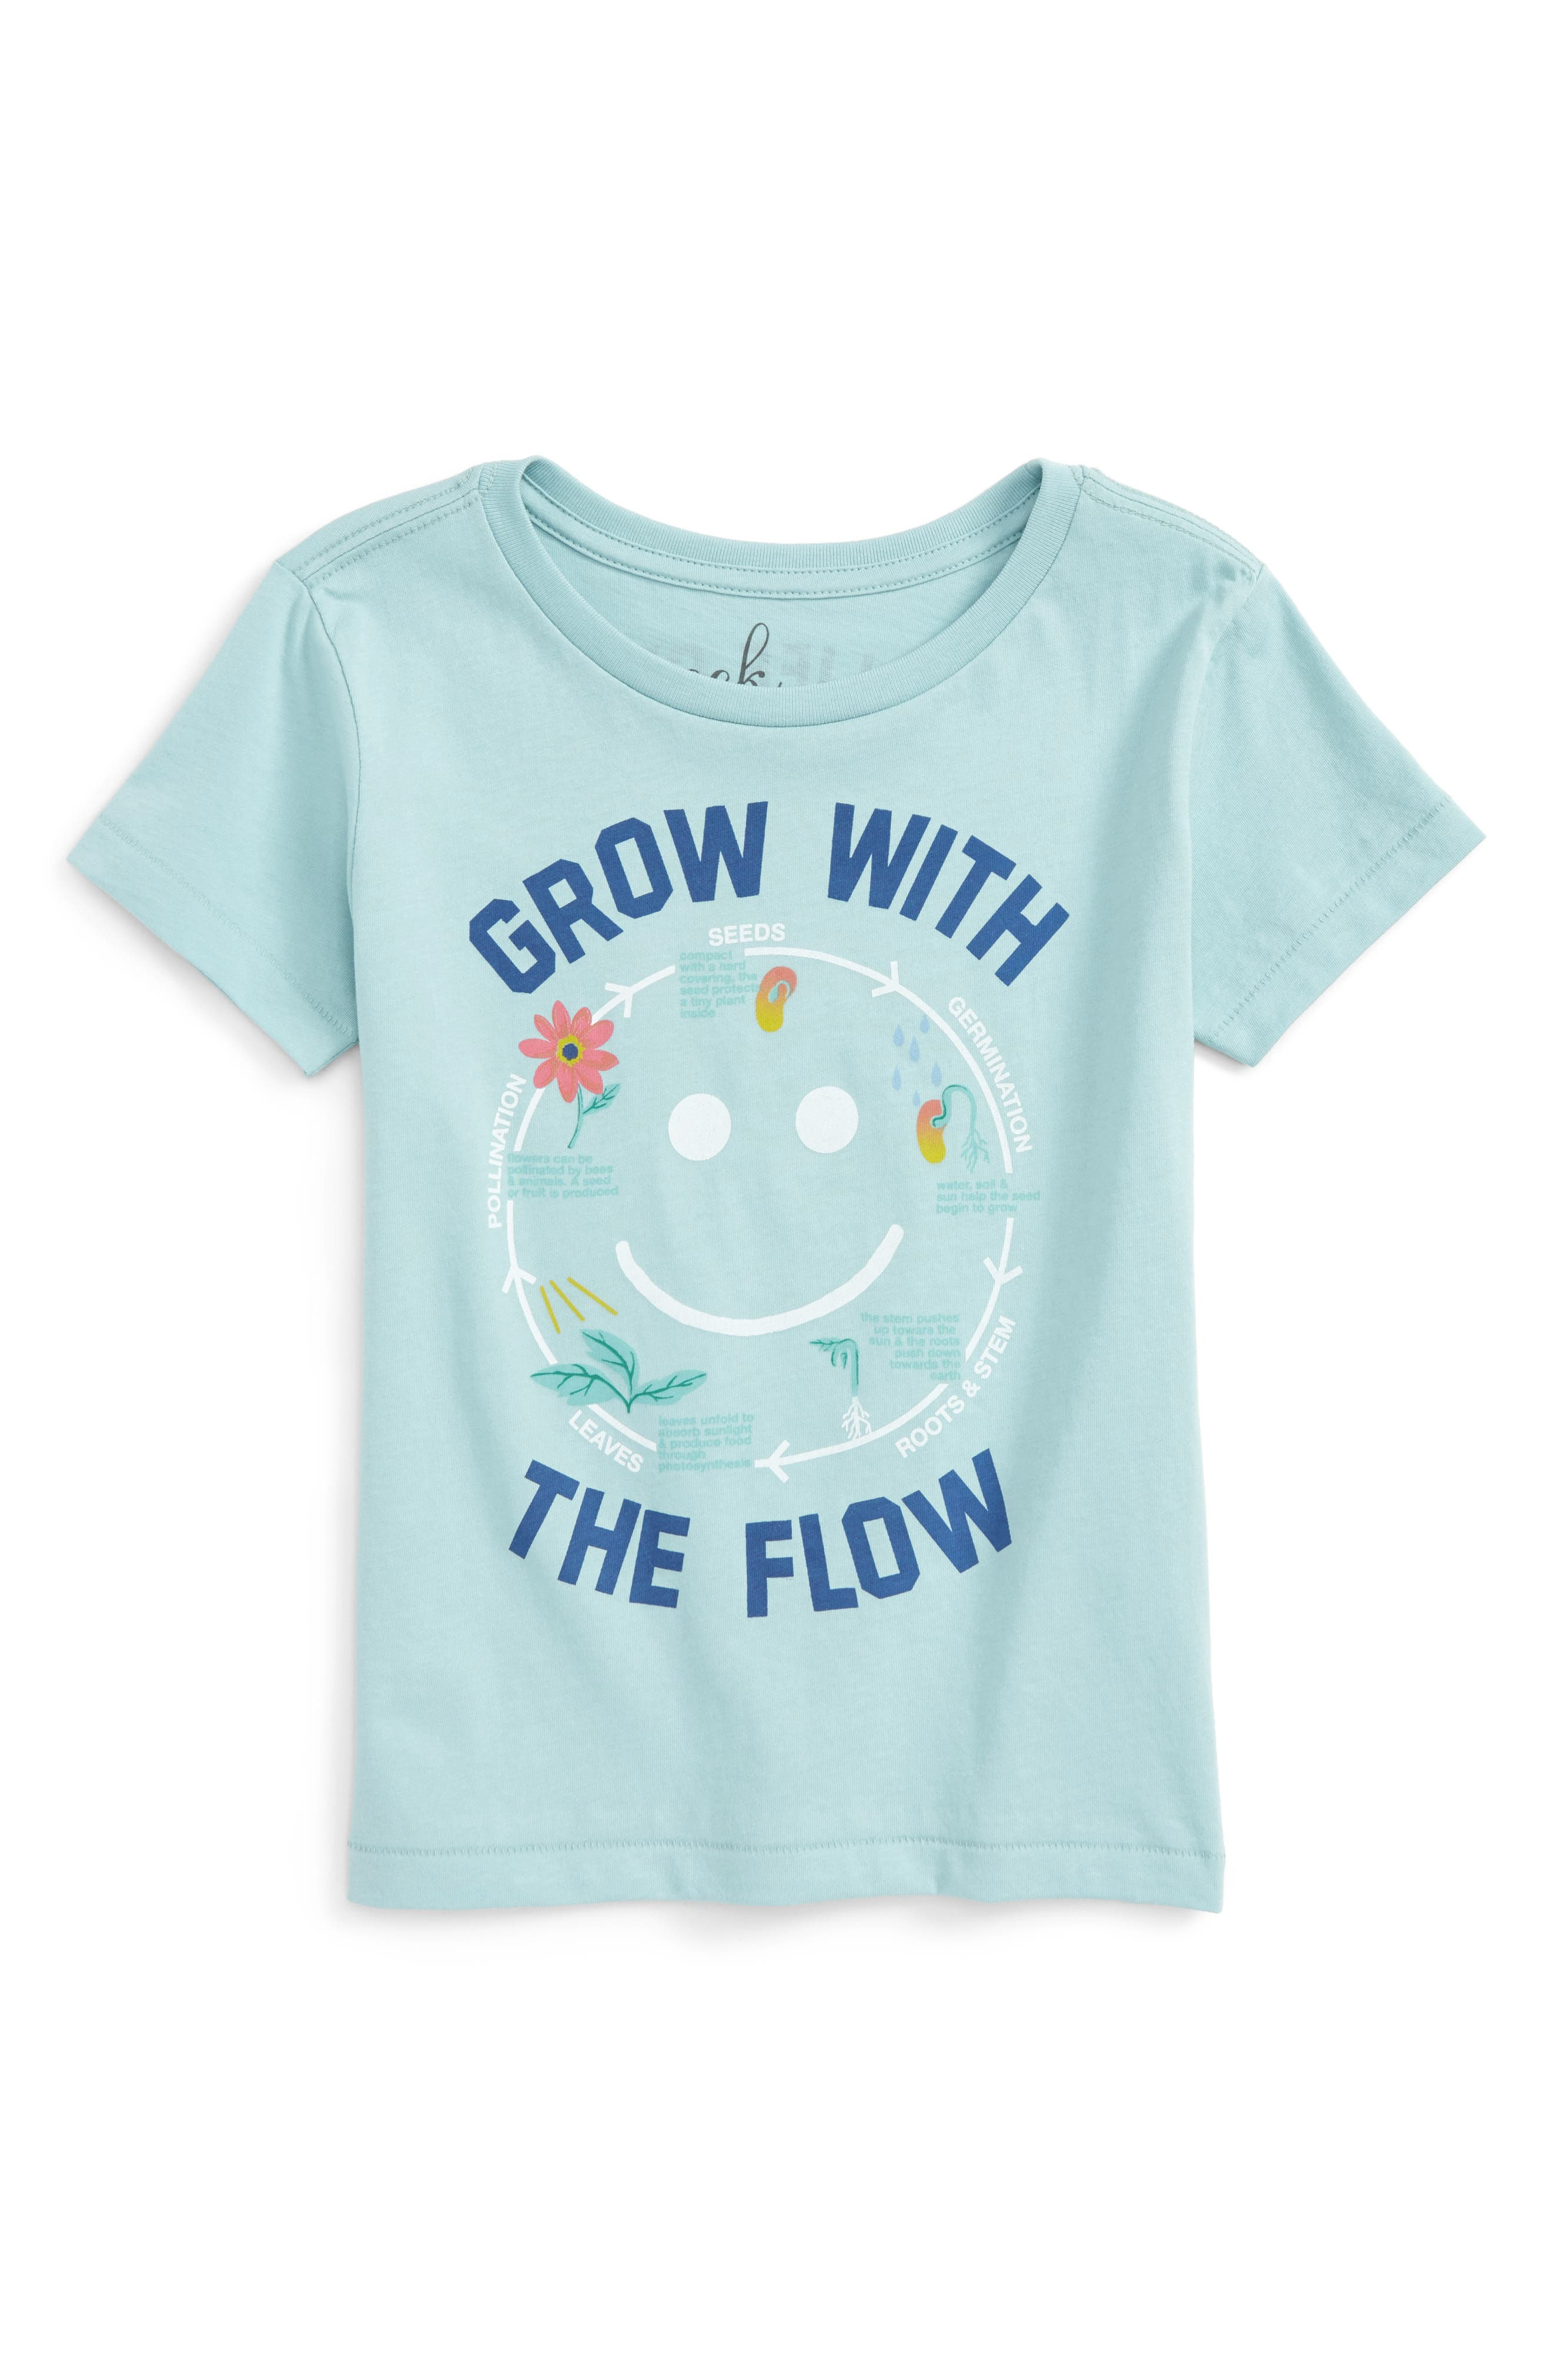 Alternate Image 1 Selected - Peek Grow with the Flow Graphic Tee (Toddler Girls, Little Girls & Big Girls)